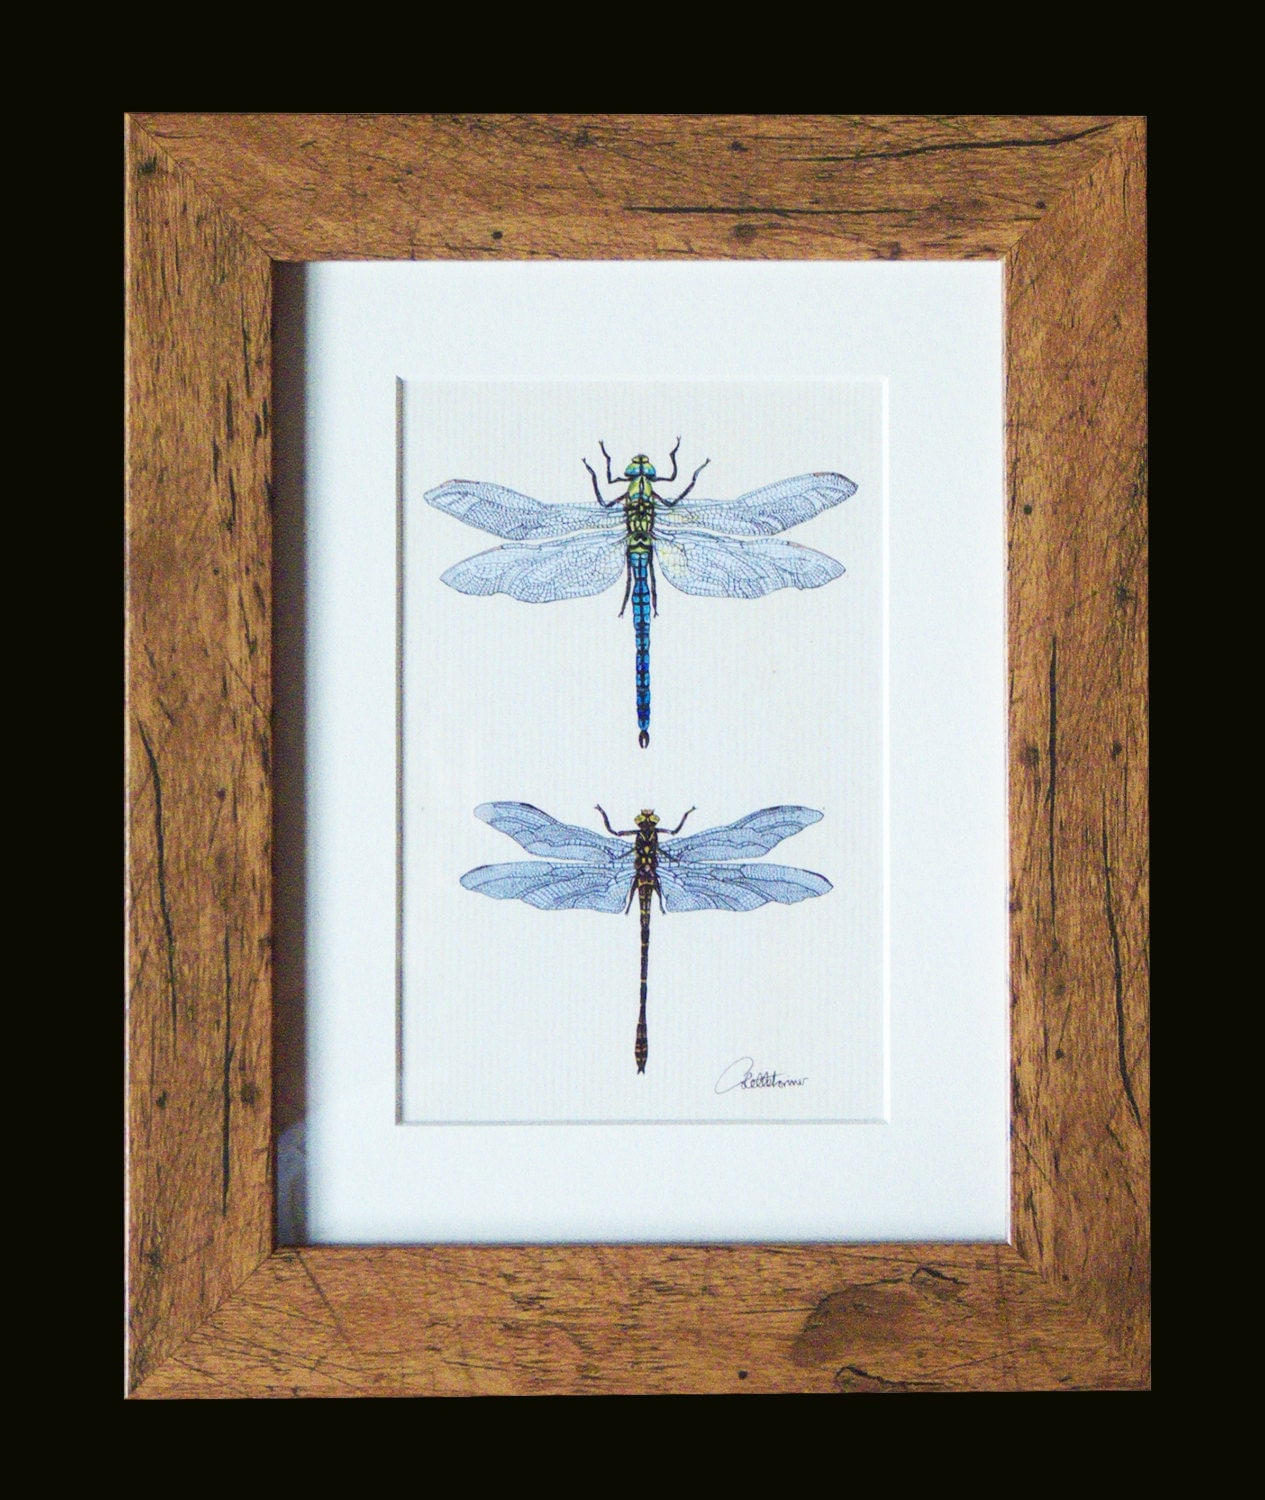 Dragonfly picturedragonfly printdragonfly wall decor for Dragonfly mural